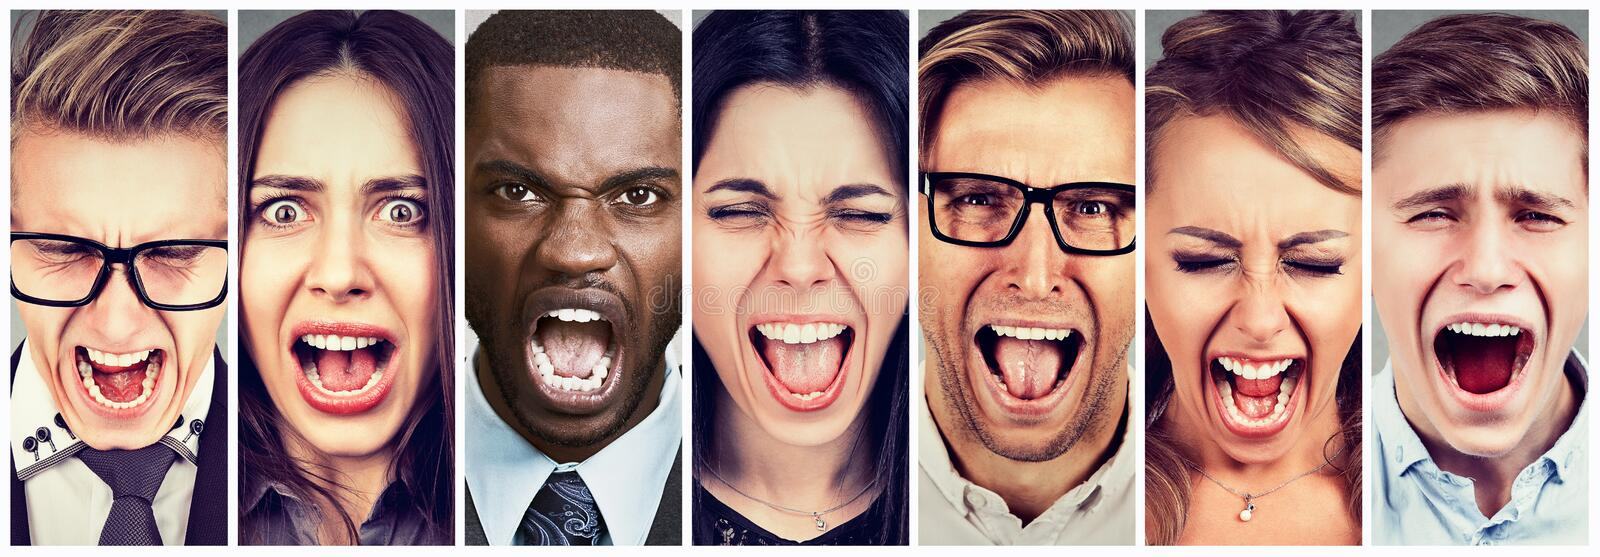 Group of angry young people screaming stock photos